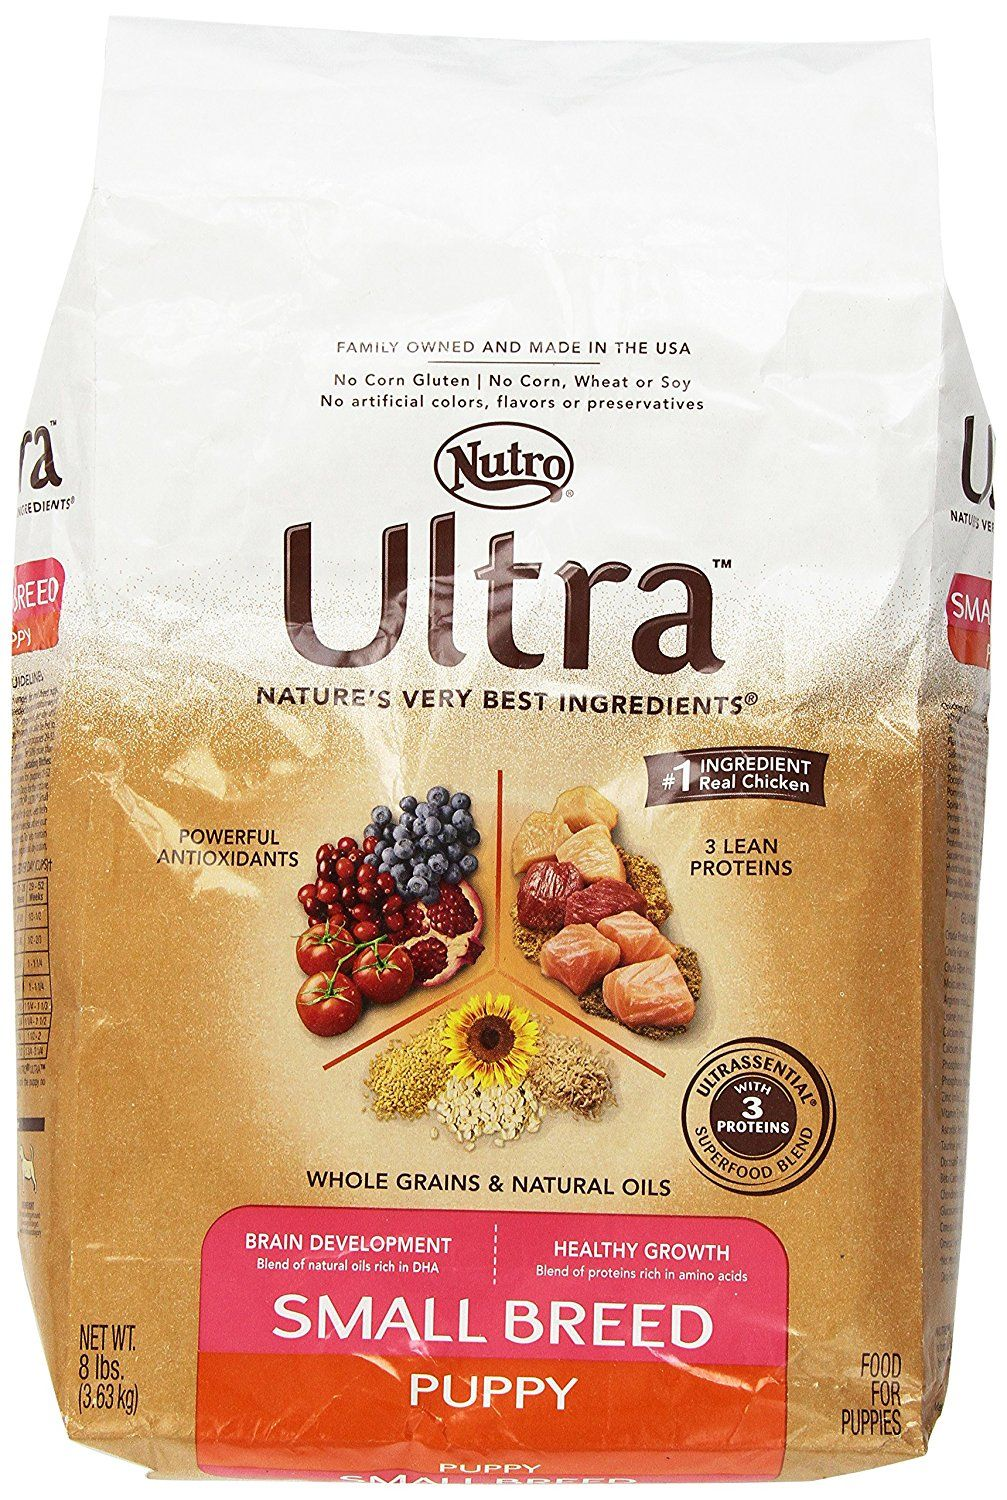 NUTRO ULTRA Puppy Dry Dog Food >>> Quickly view this